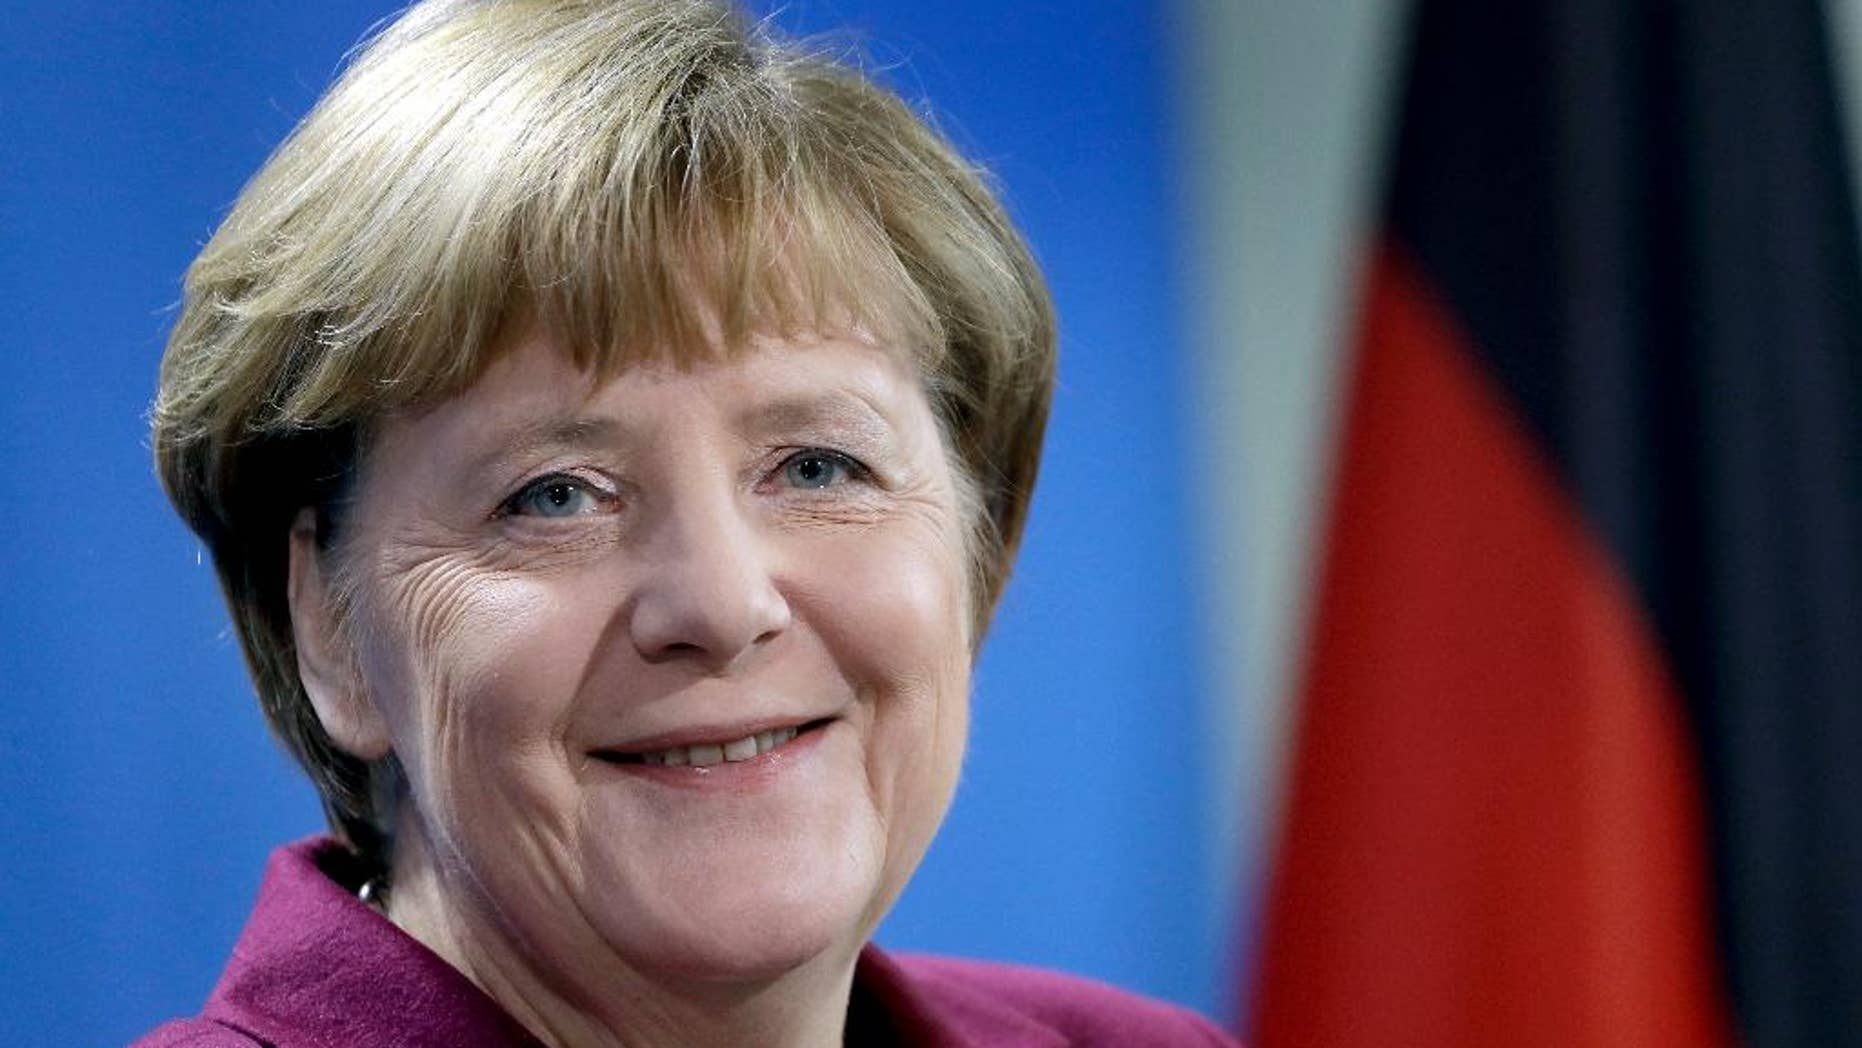 FILE - In this Nov. 8, 2016 file photo German Chancellor Angela Merkel smiles during a joint news conference as part of a meeting with the Prime Minister of Norway, Erna Solberg, at the chancellery in Berlin, Germany. (AP Photo/Michael Sohn, file)